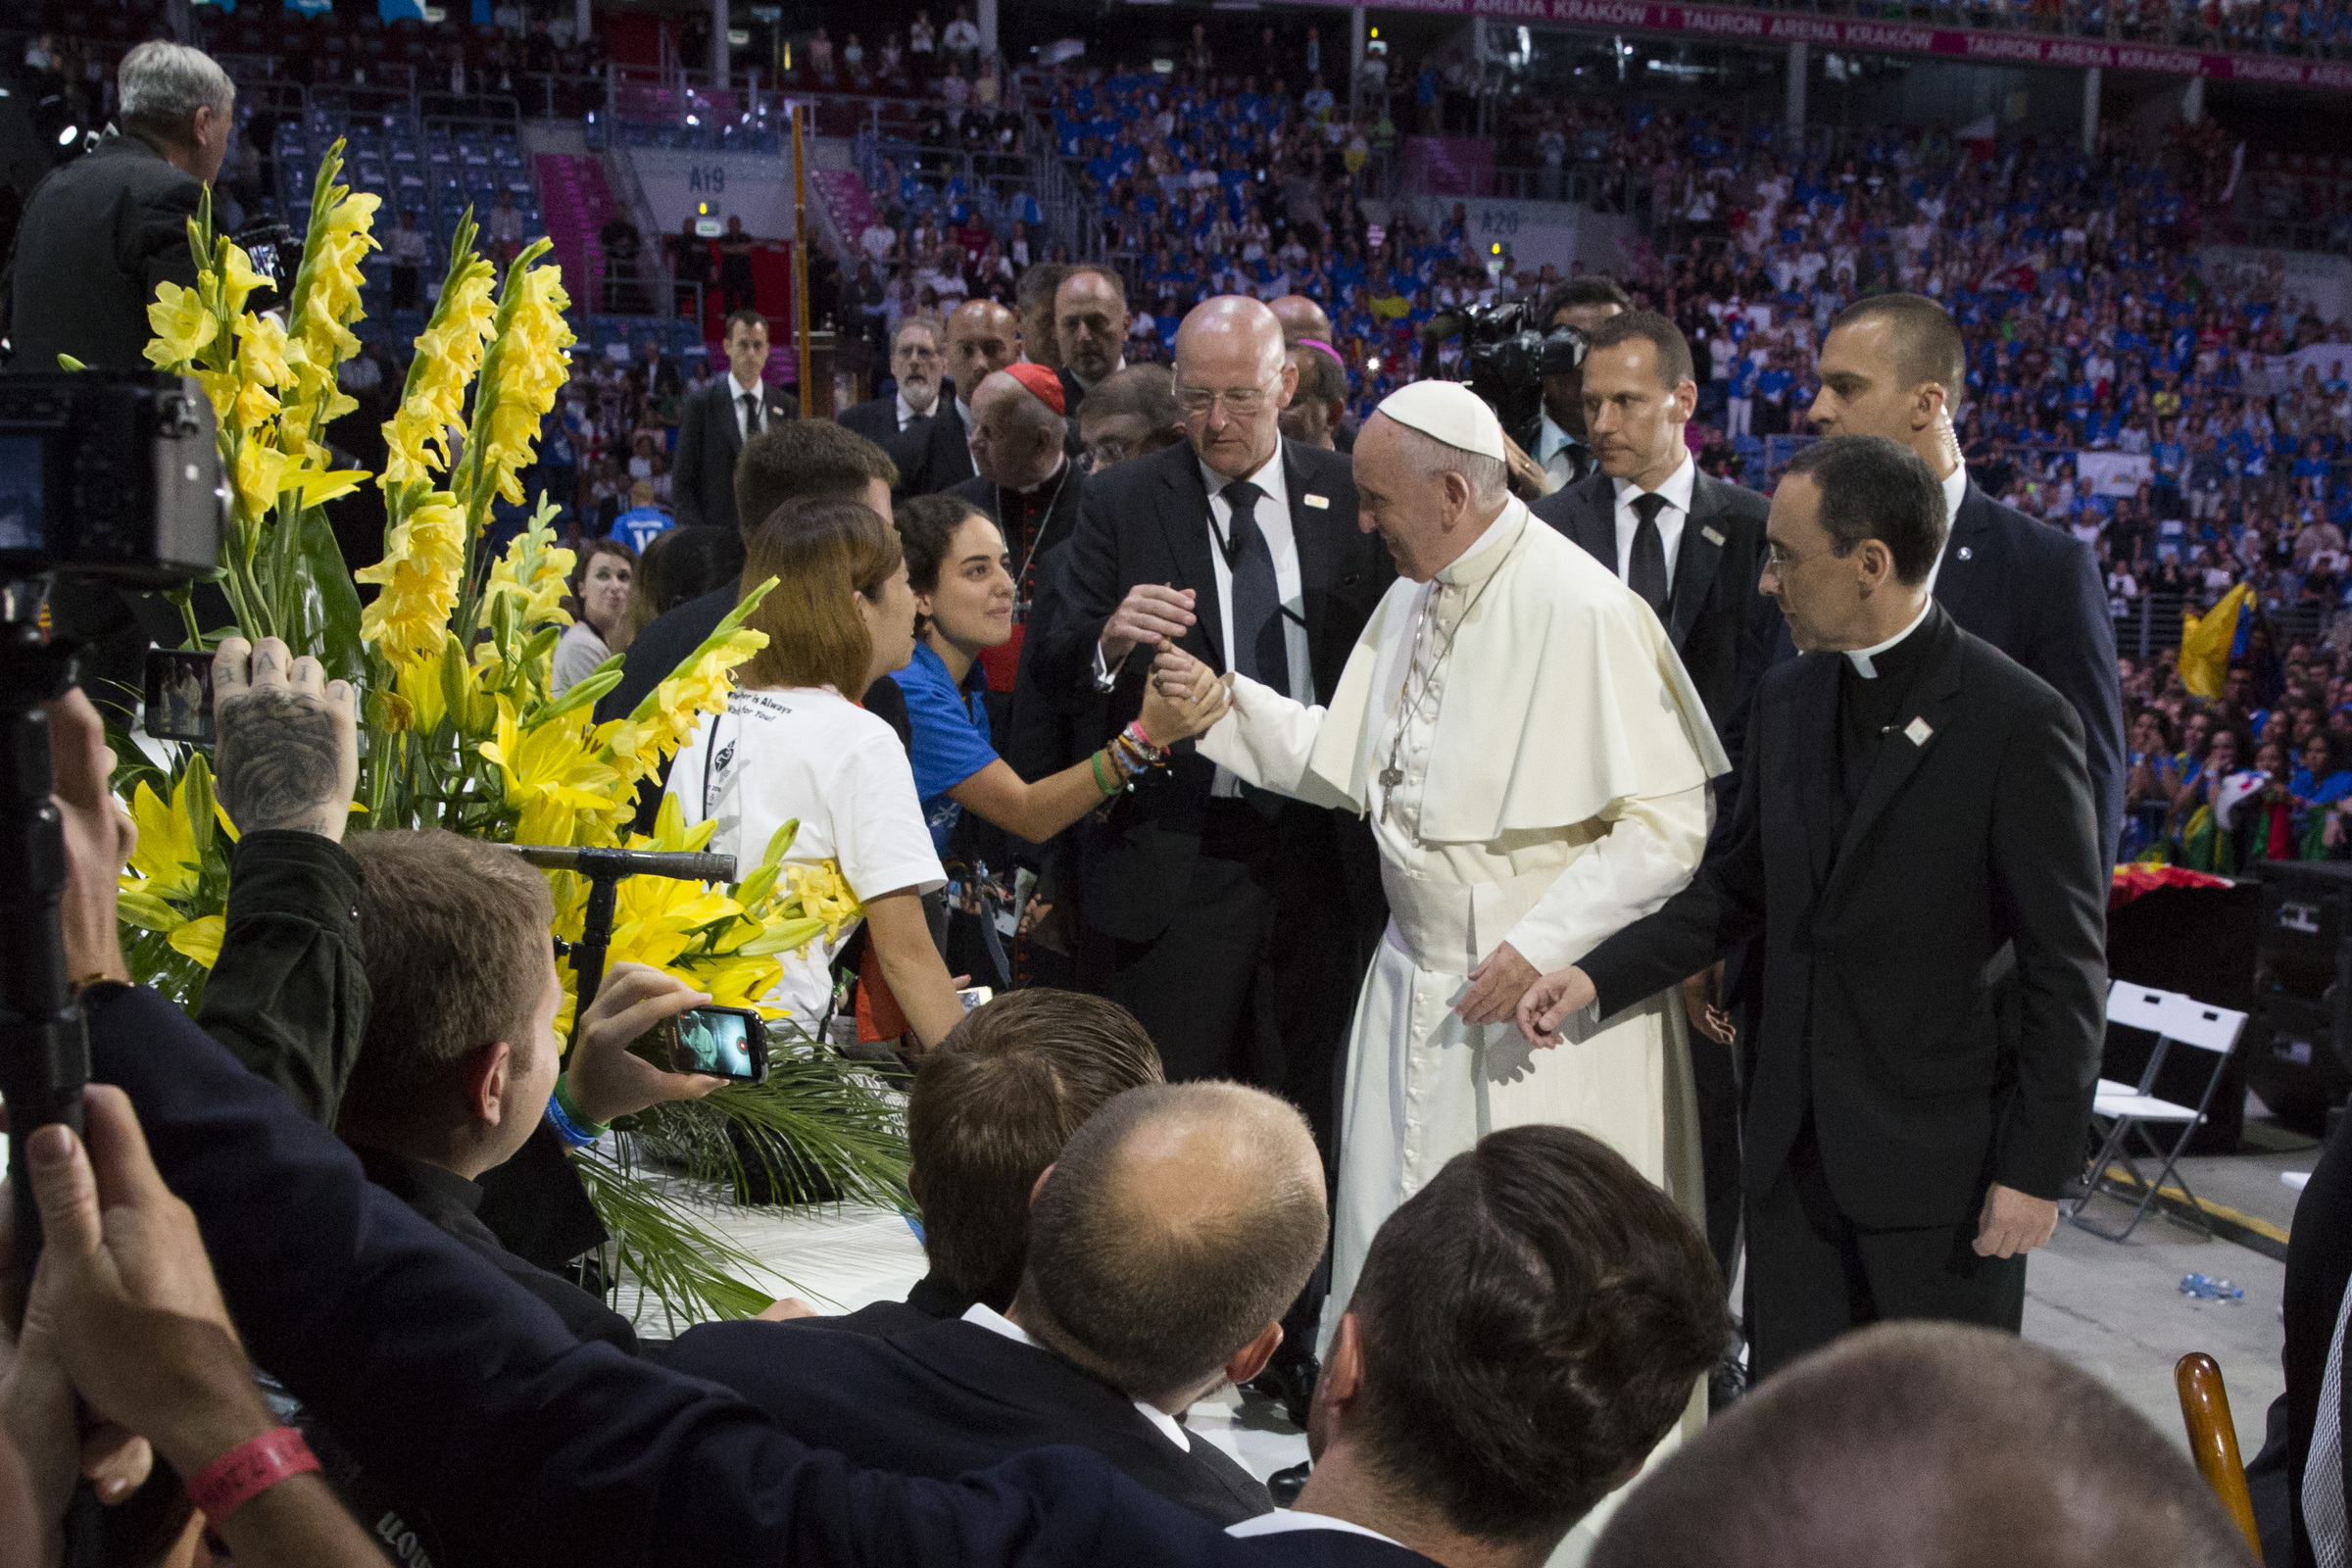 Pope meets volunteers